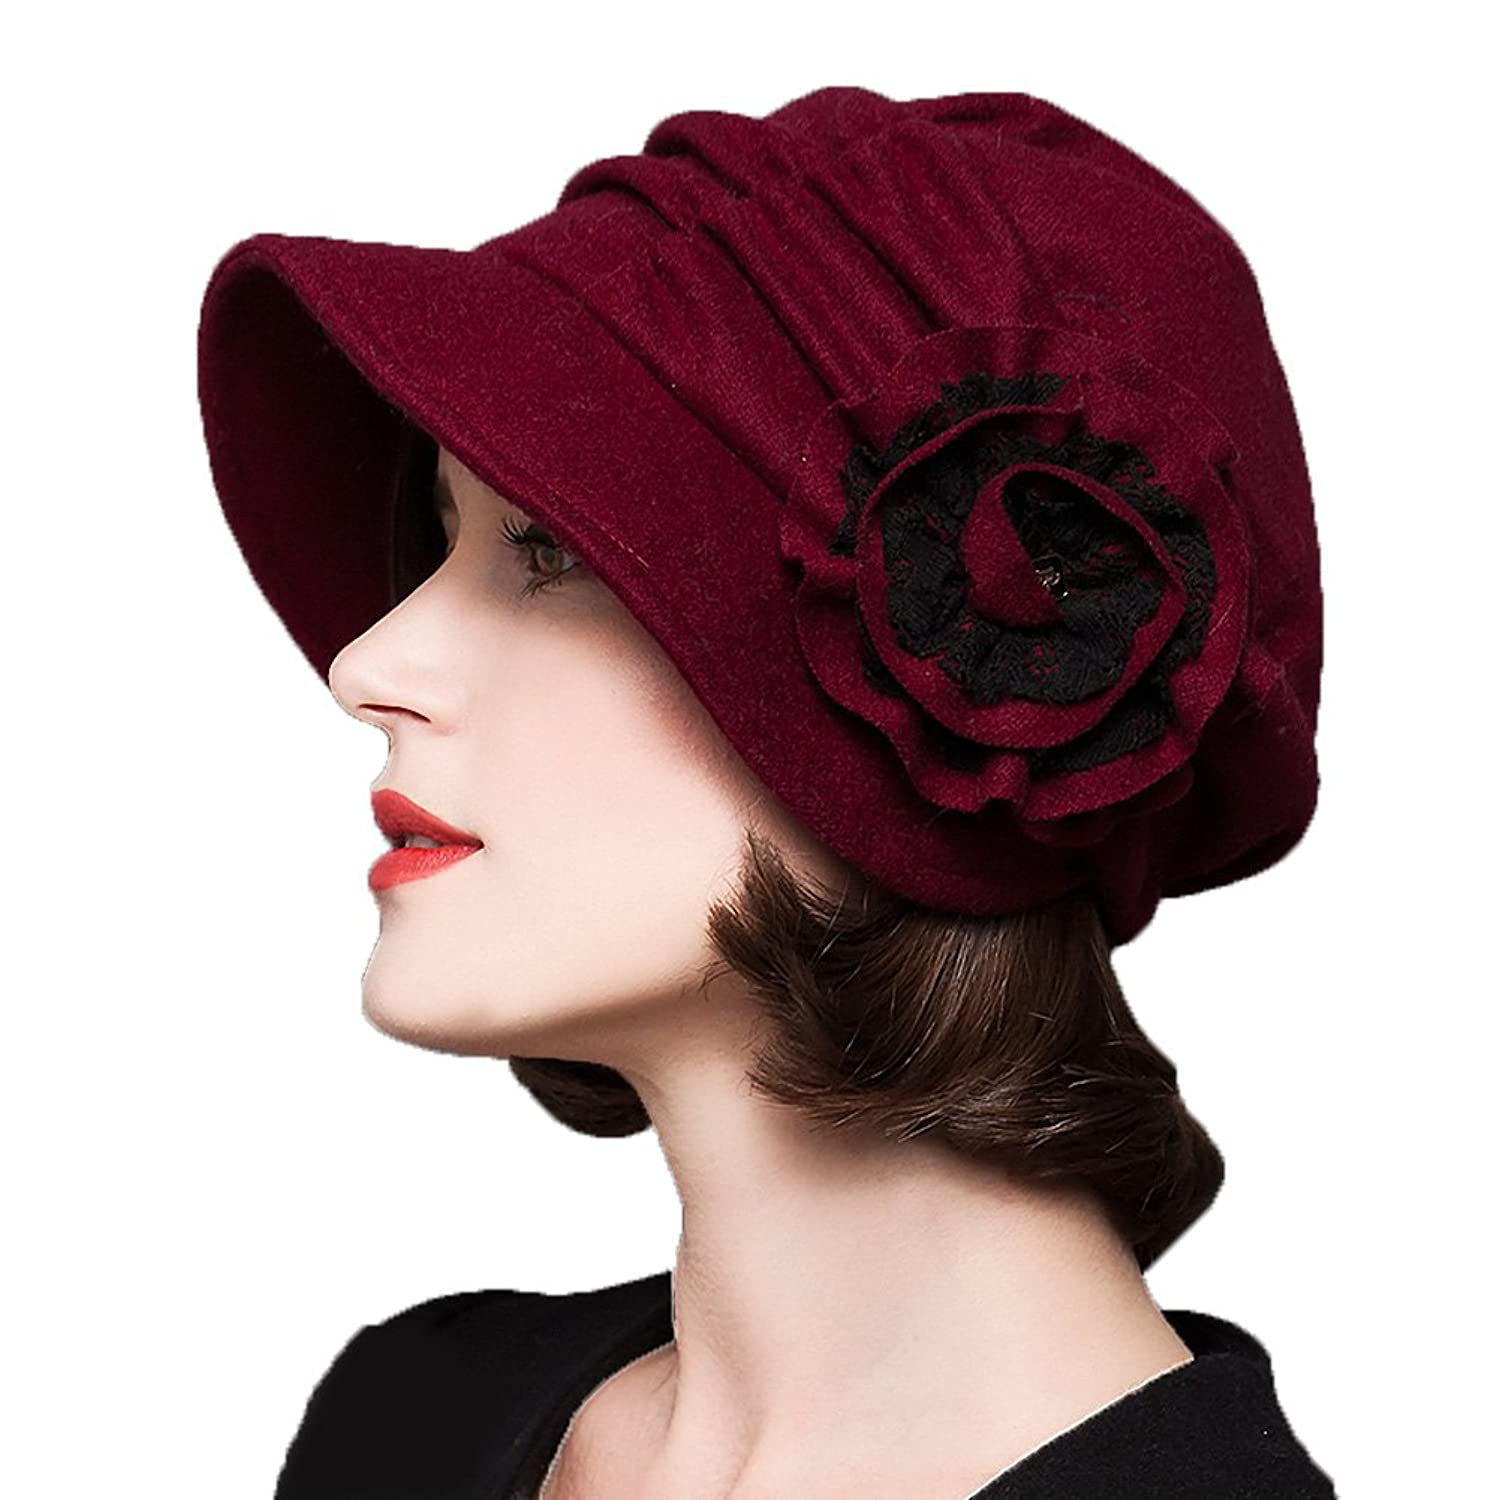 Simple 1920s Hat Decorating with Ribbon Decorative Flowers Wool Beret Maitose Trade Womens Decorative Flowers Wool Beret $28.40 AT vintagedancer.com